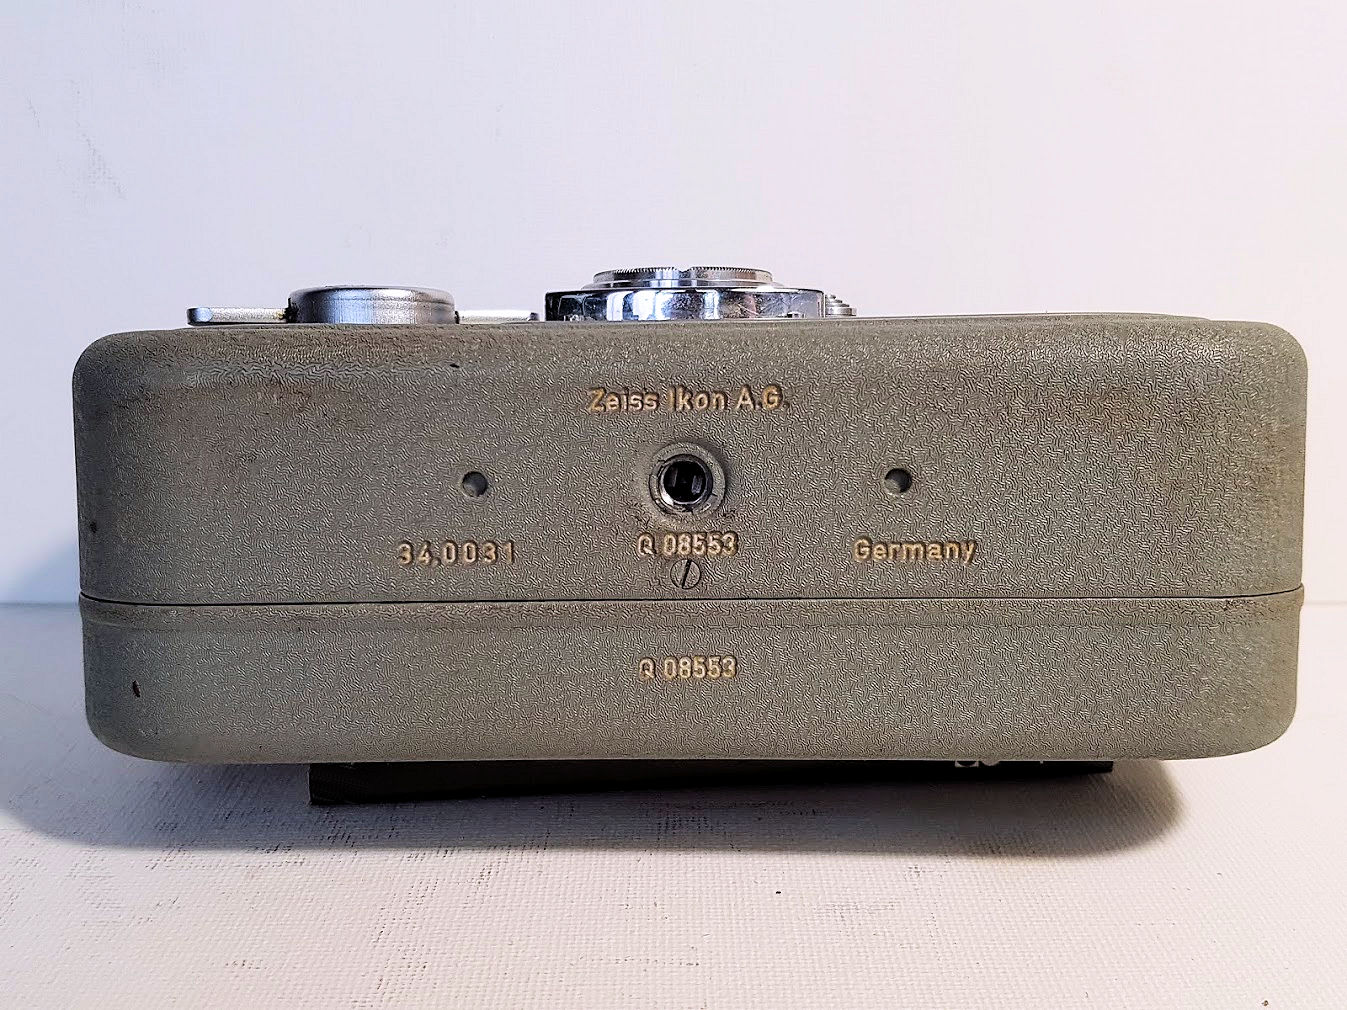 ZEISS IKON Movinette 8B 1958 - Image90